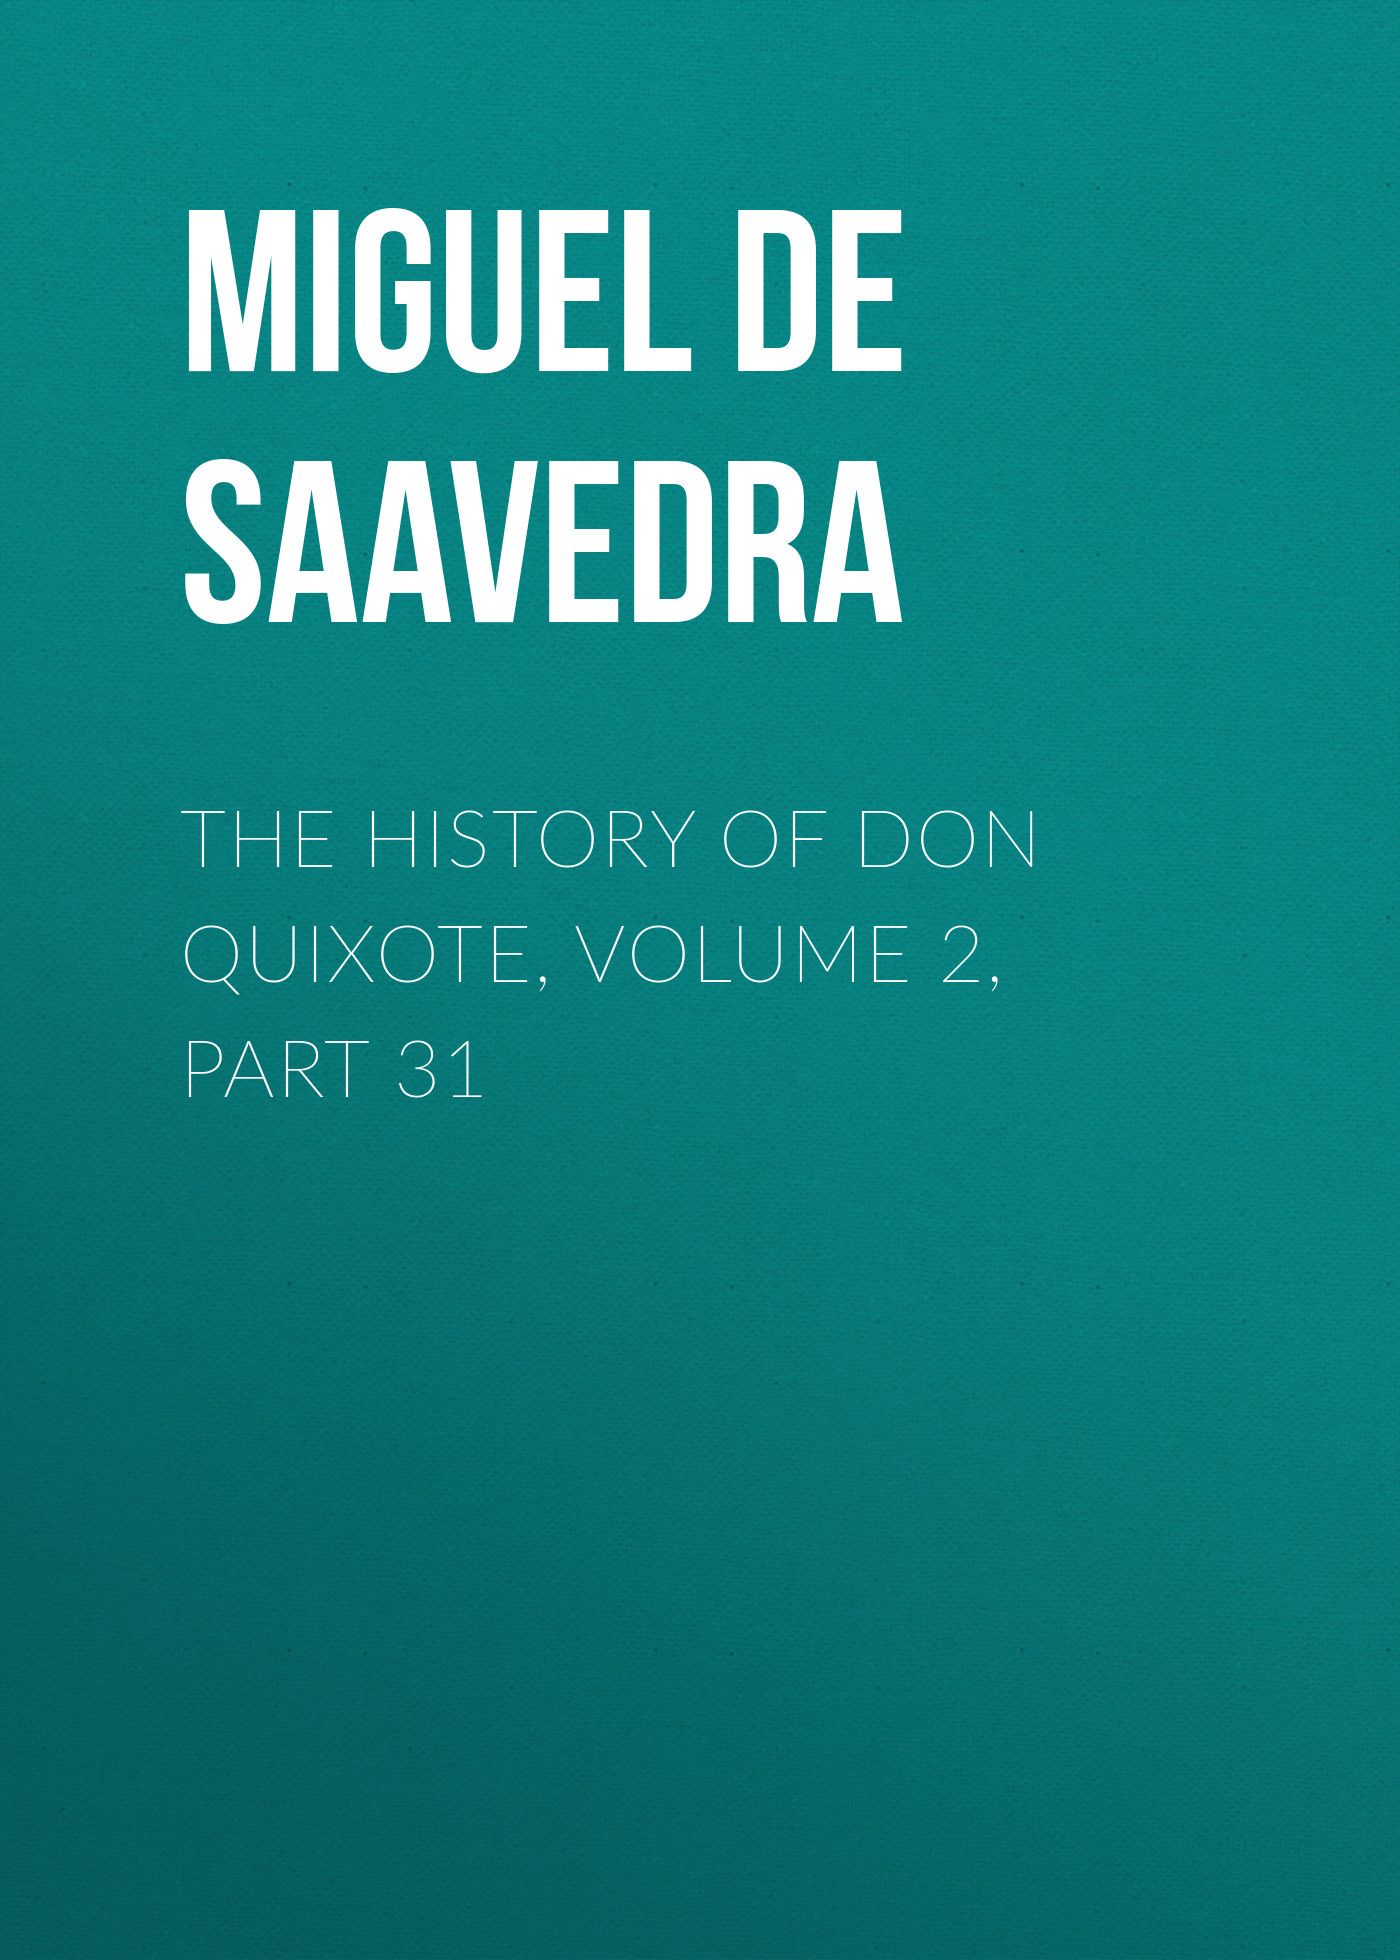 Мигель де Сервантес Сааведра The History of Don Quixote, Volume 2, Part 31 rasmus björn anderson the heimskringla a history of the norse kings volume 5 part 2